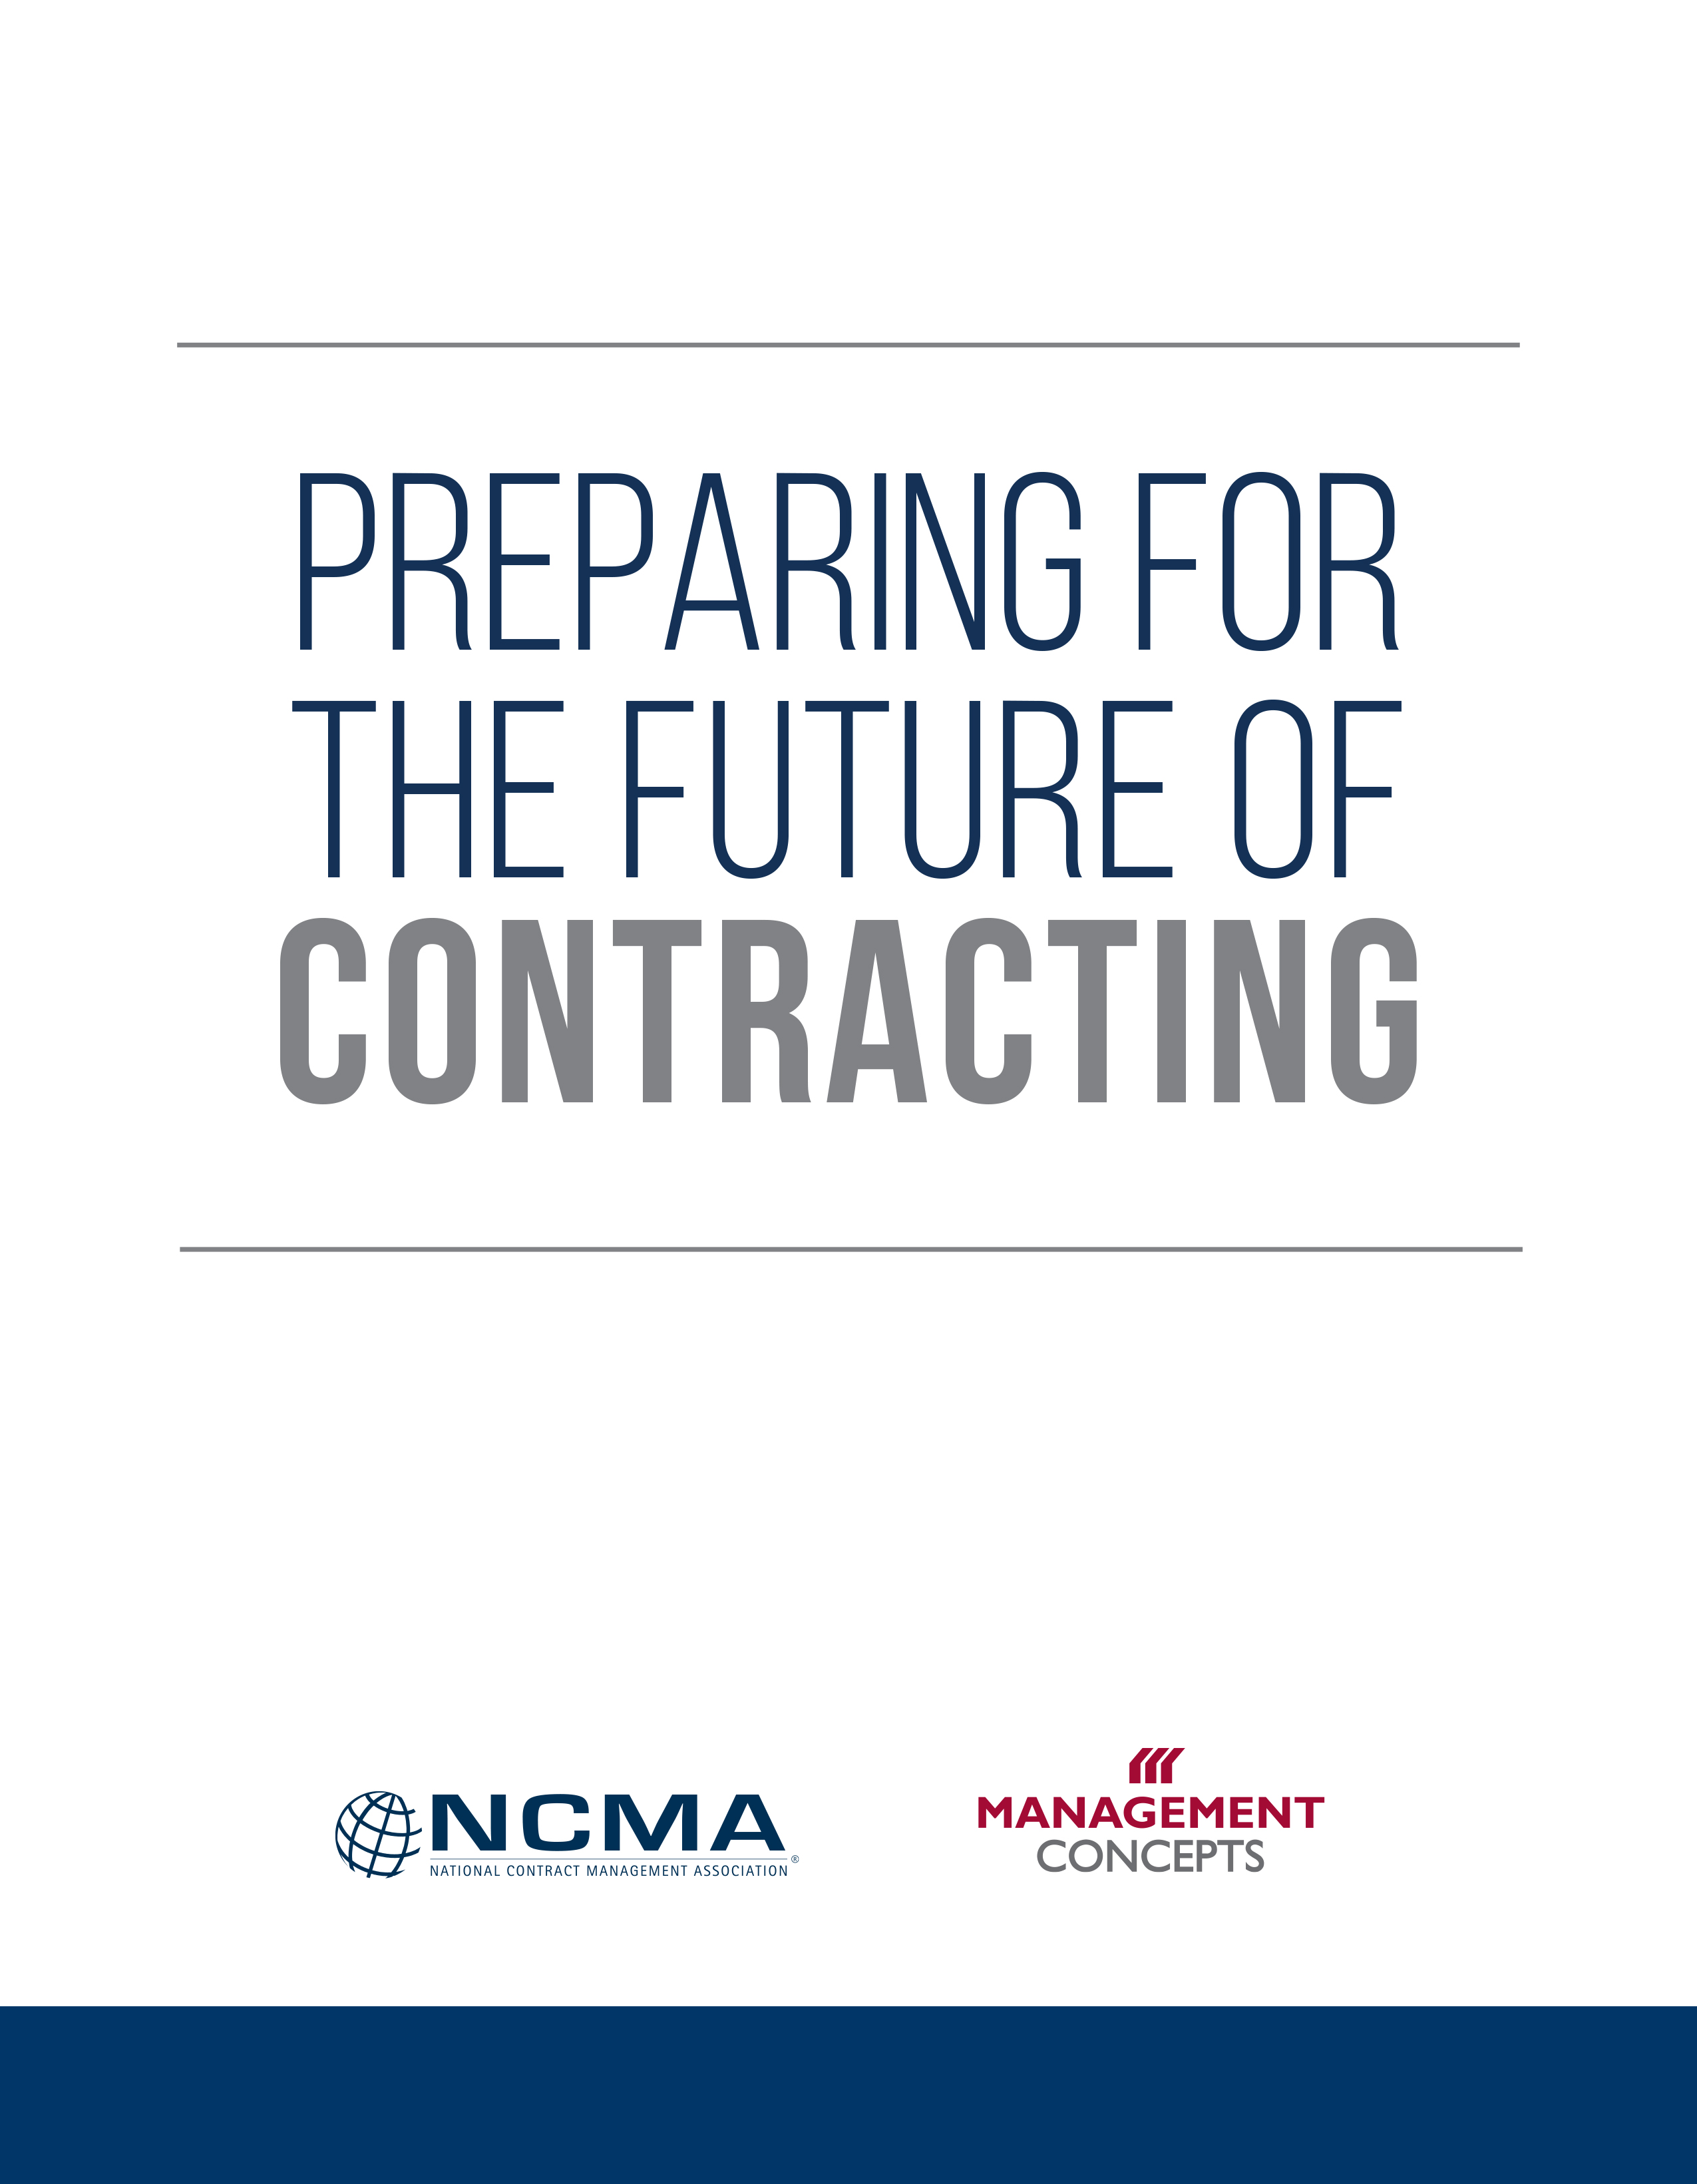 Future of Contracting